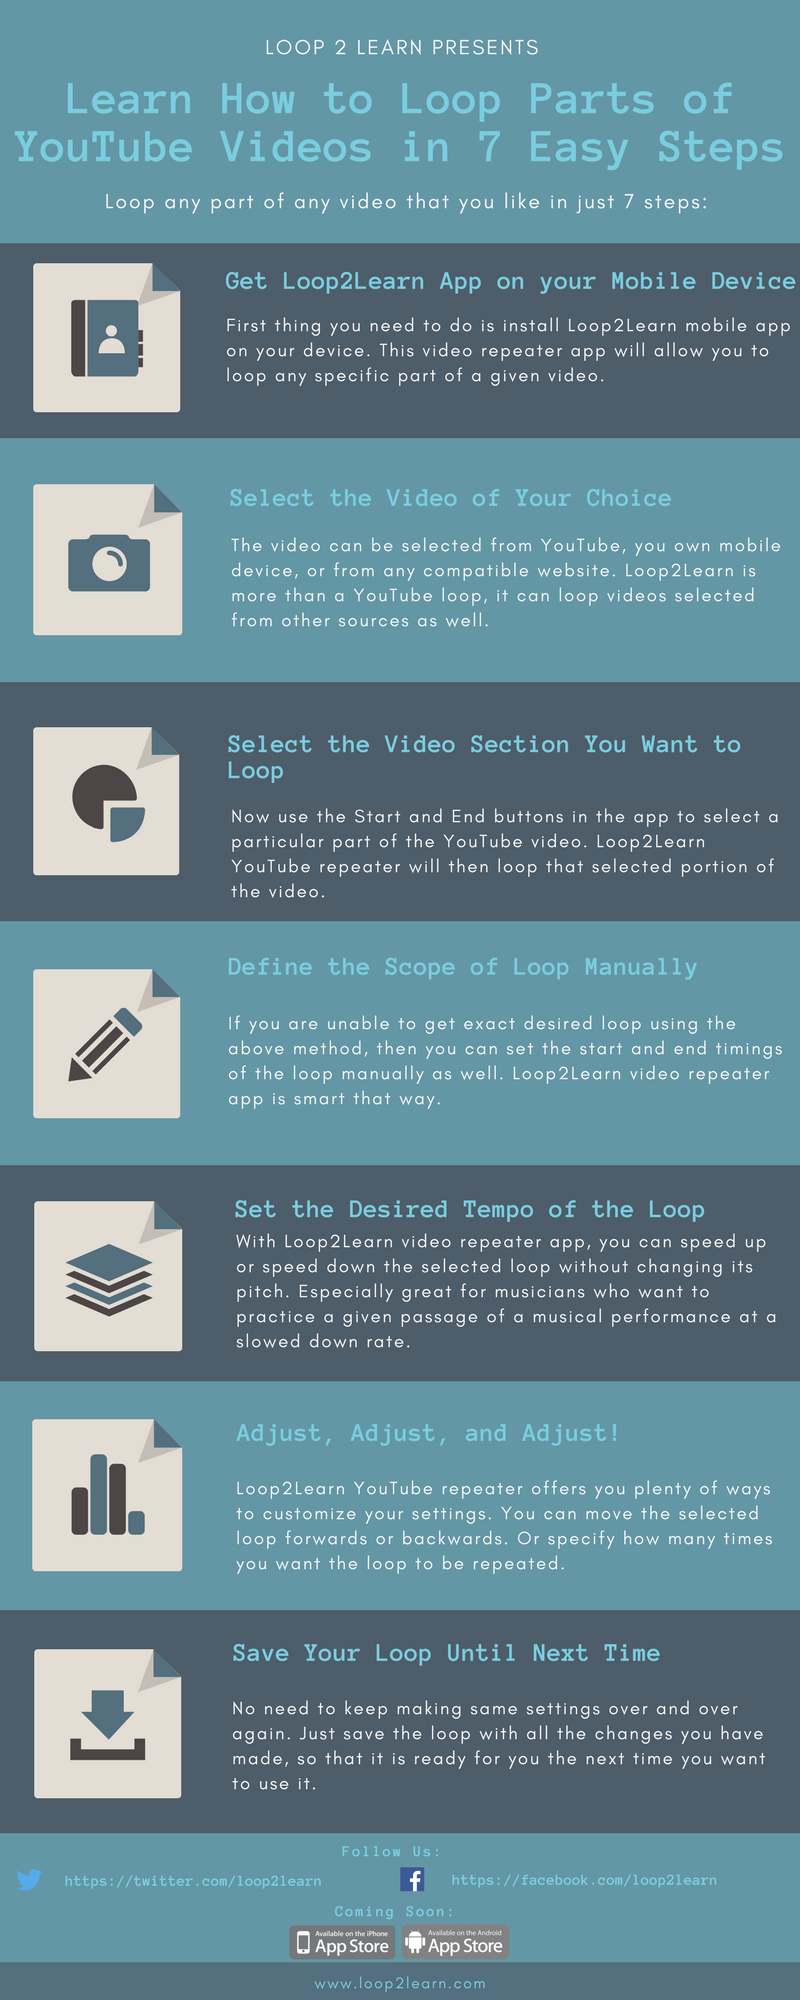 Learn How to Loop Parts of YouTube Videos in 7 Easy Steps